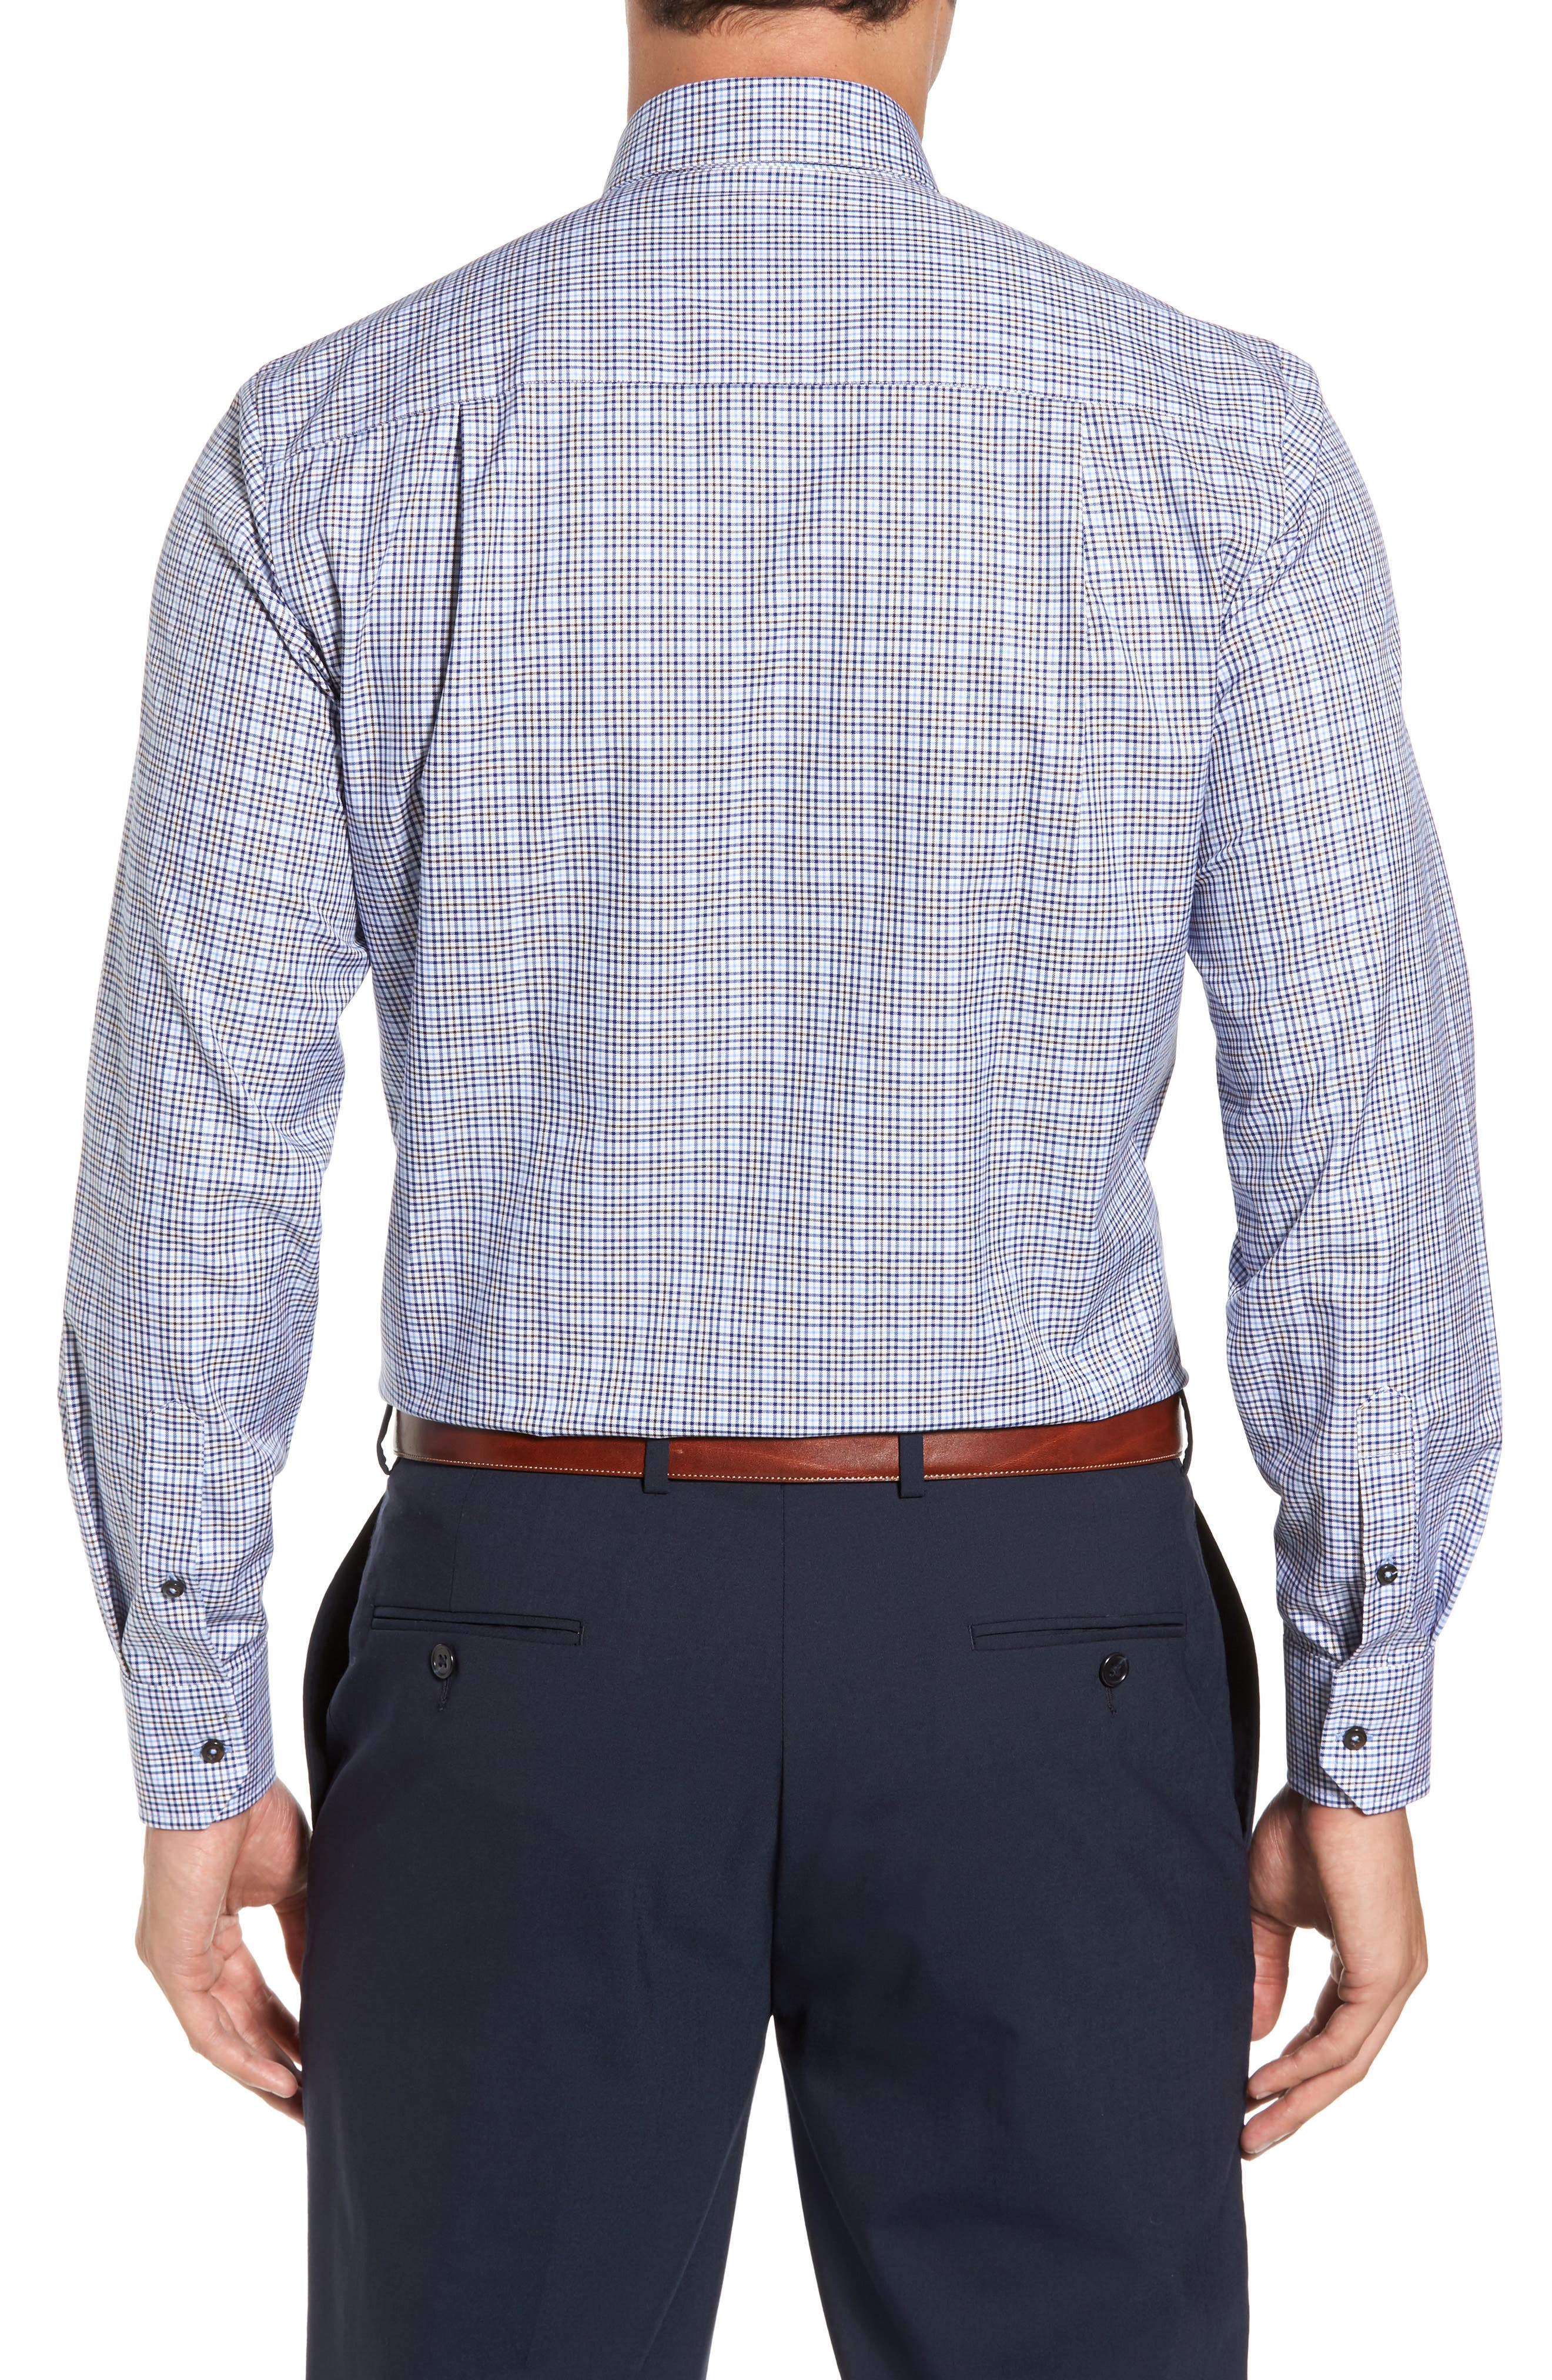 Alternate Image 2  - David Donahue Regular Fit Plaid Sport Shirt